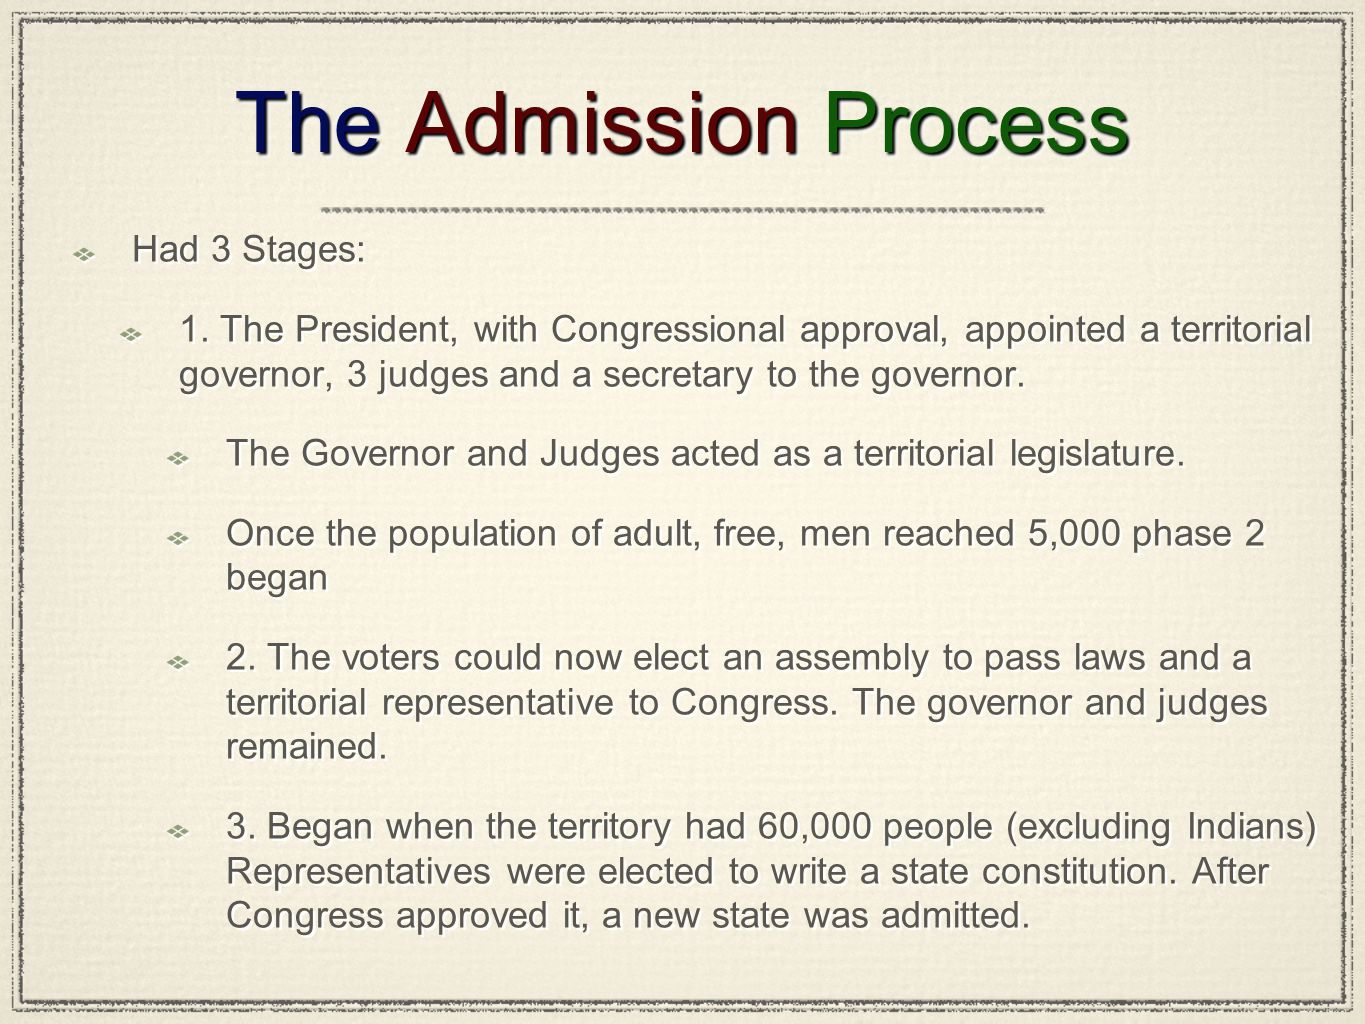 The Admission Process Had 3 Stages: 1. The President, with Congressional approval, appointed a territorial governor, 3 judges and a secretary to the g